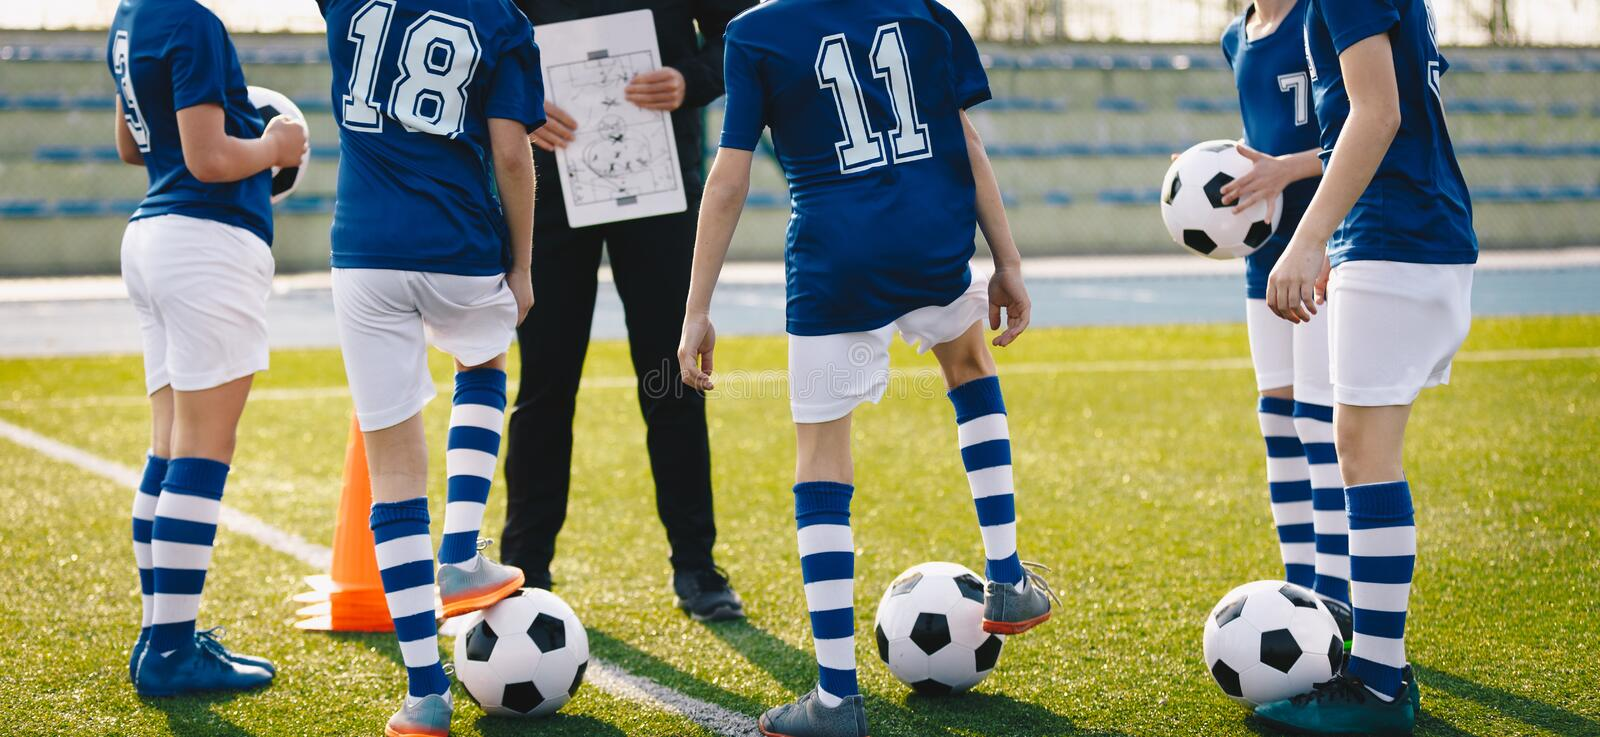 Children on Football Training. Young Footballers Listening Coach`s Pregame Speech. Coach Using Tactics Board Before Soccer Tournament Game royalty free stock photo